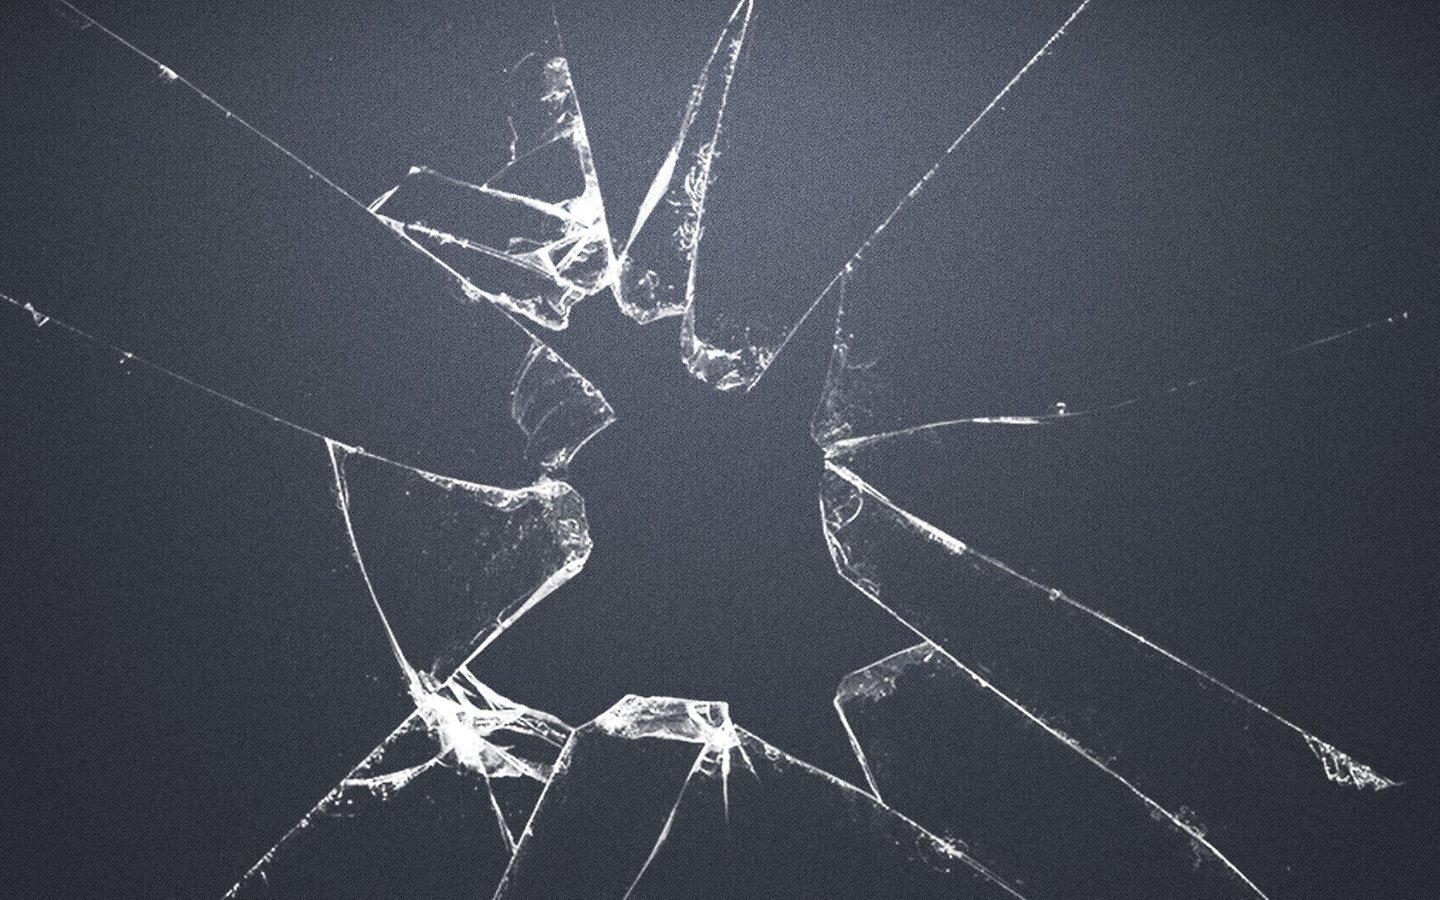 Cracked Screen Wallpaper And Background 1440x900 ID687705